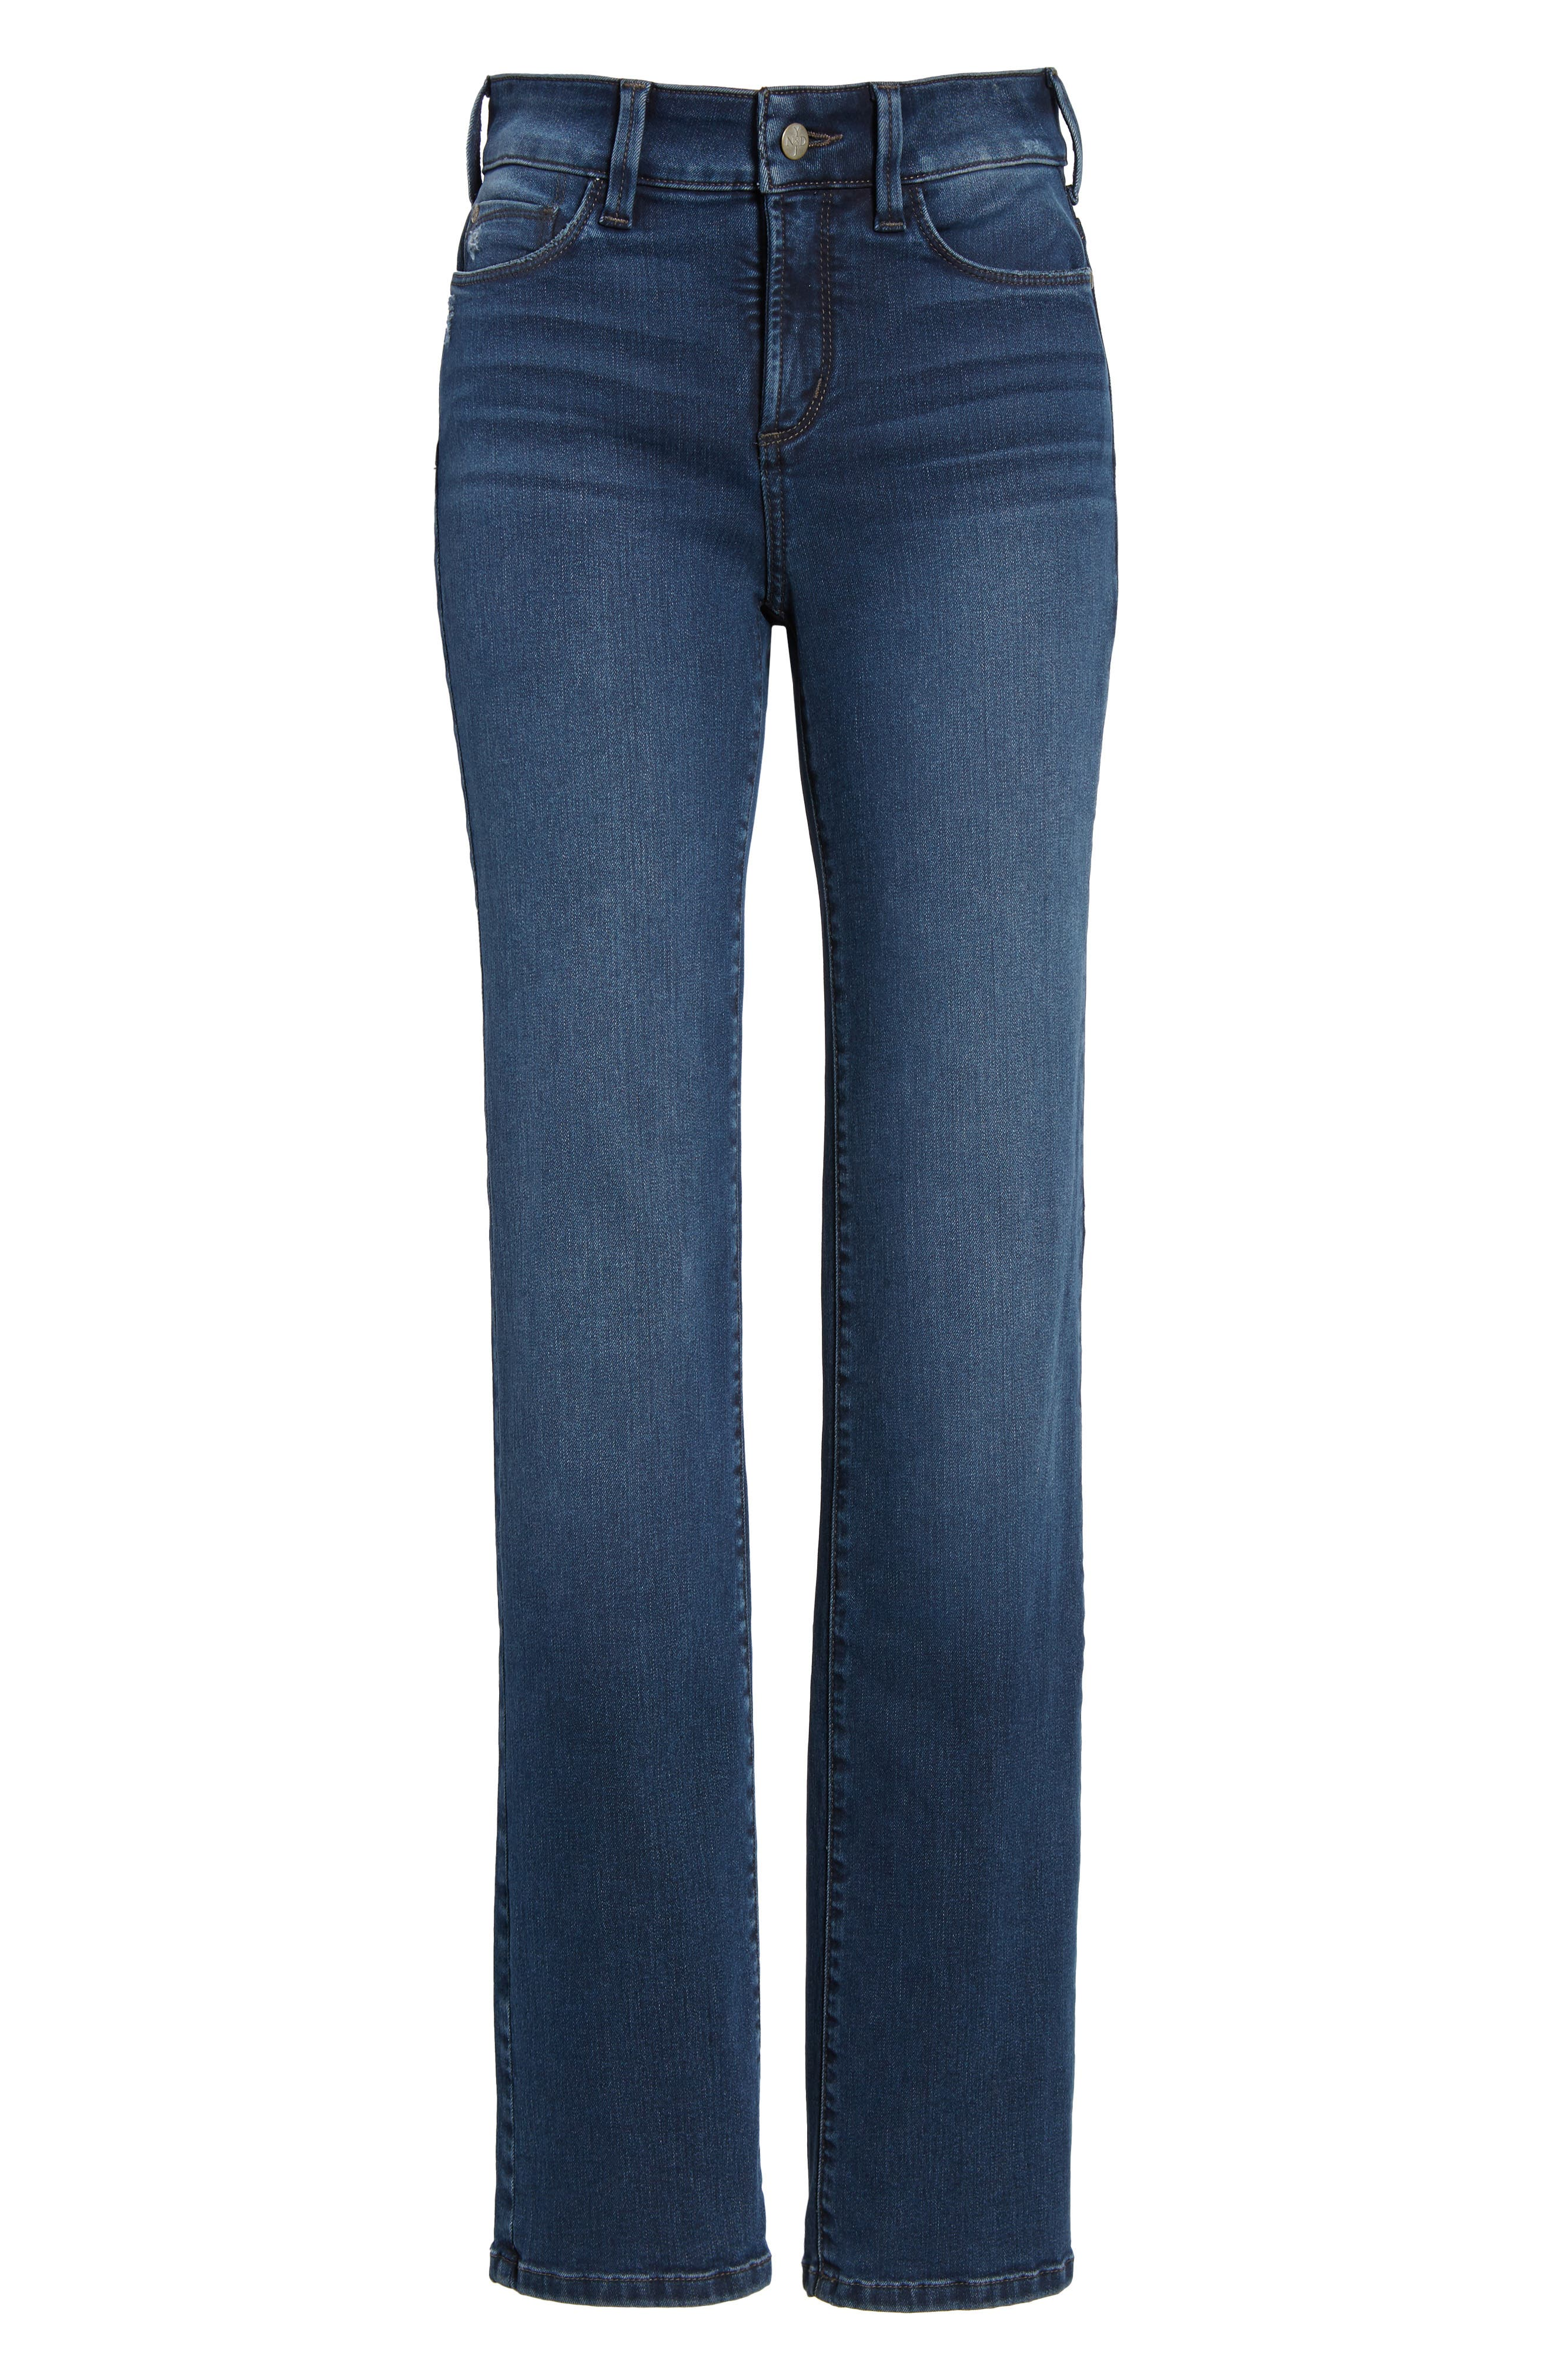 Marilyn Stretch Straight Leg Jeans,                             Alternate thumbnail 6, color,                             406